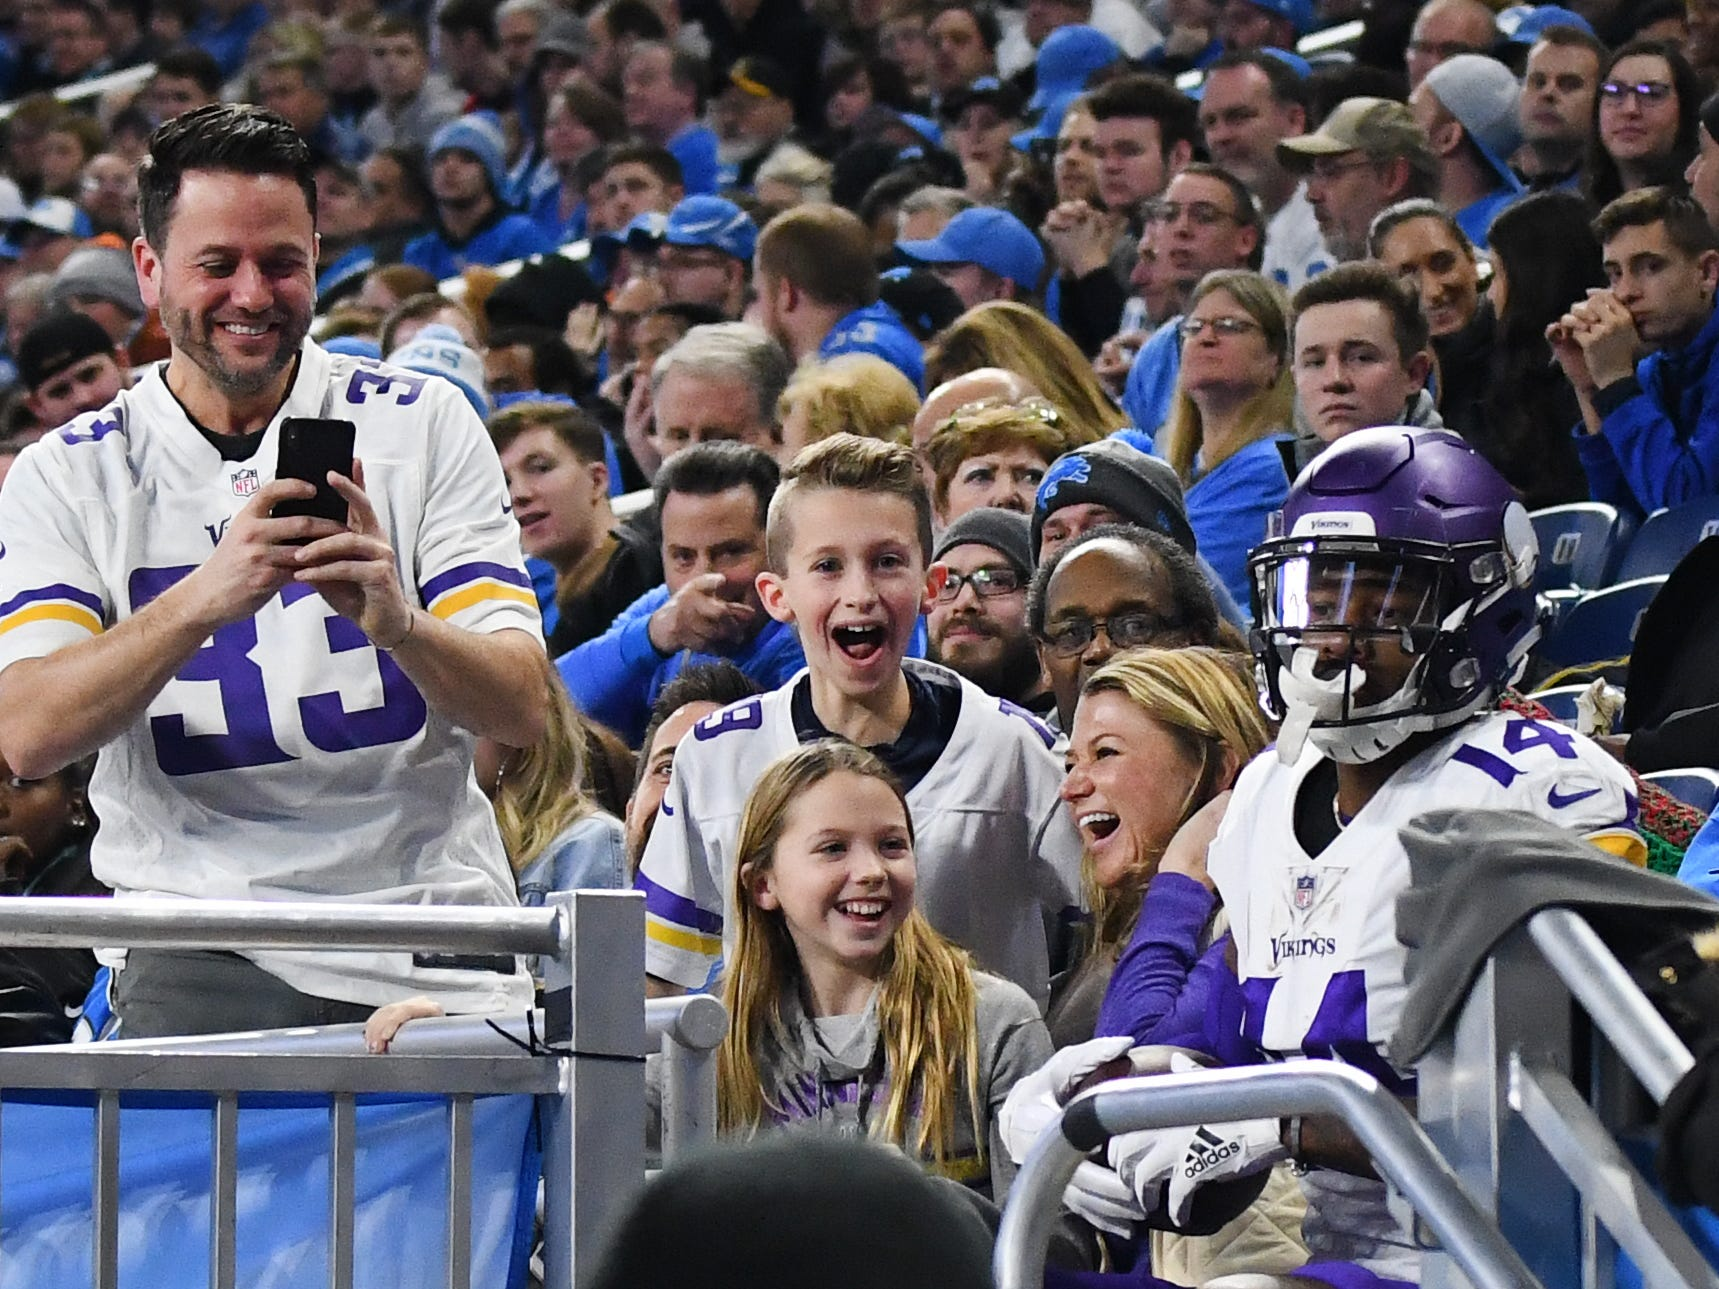 Vikings' Stefon Diggs goes into the stands and sits with Vikings fans after scoring a touchdown in the second quarter.